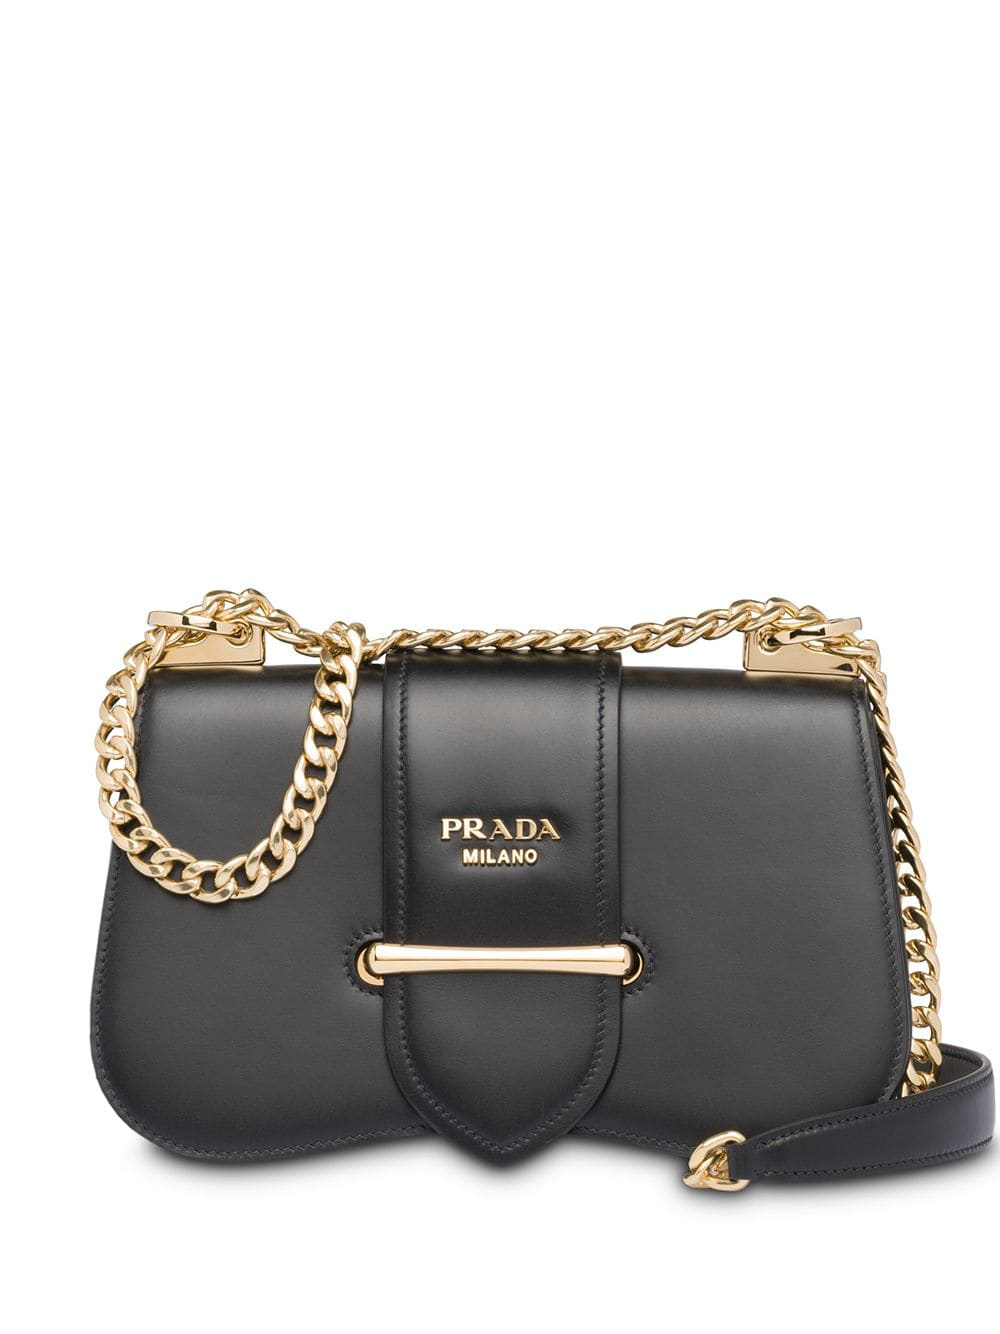 807e83da64fc68 Prada Sidonie City Calf Crossbody Bag, Black In F0002 Black | ModeSens